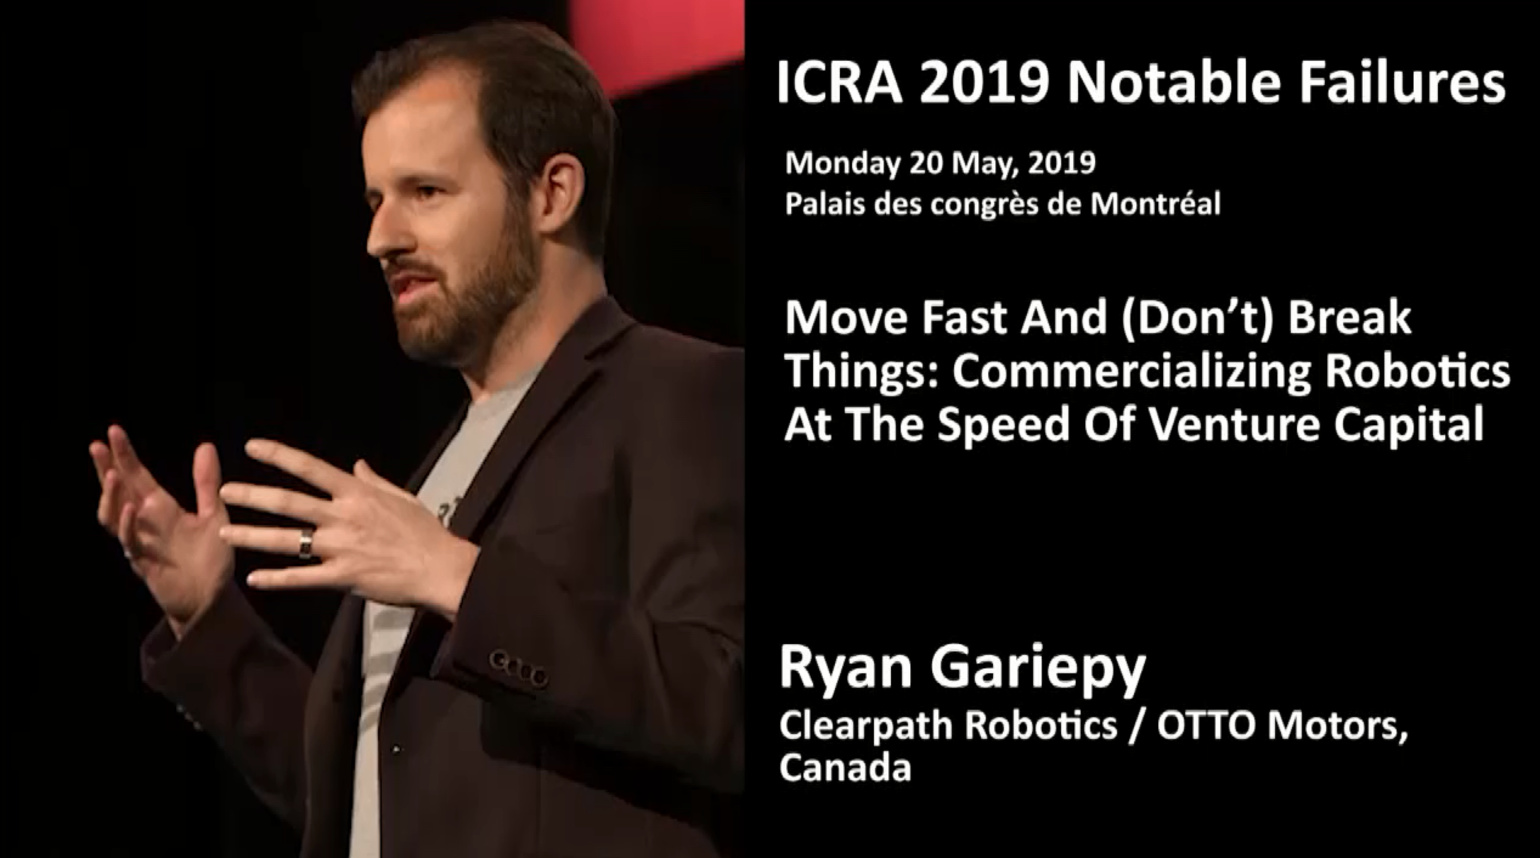 2019 ICRA Notable Failures with Ryan Gariepy